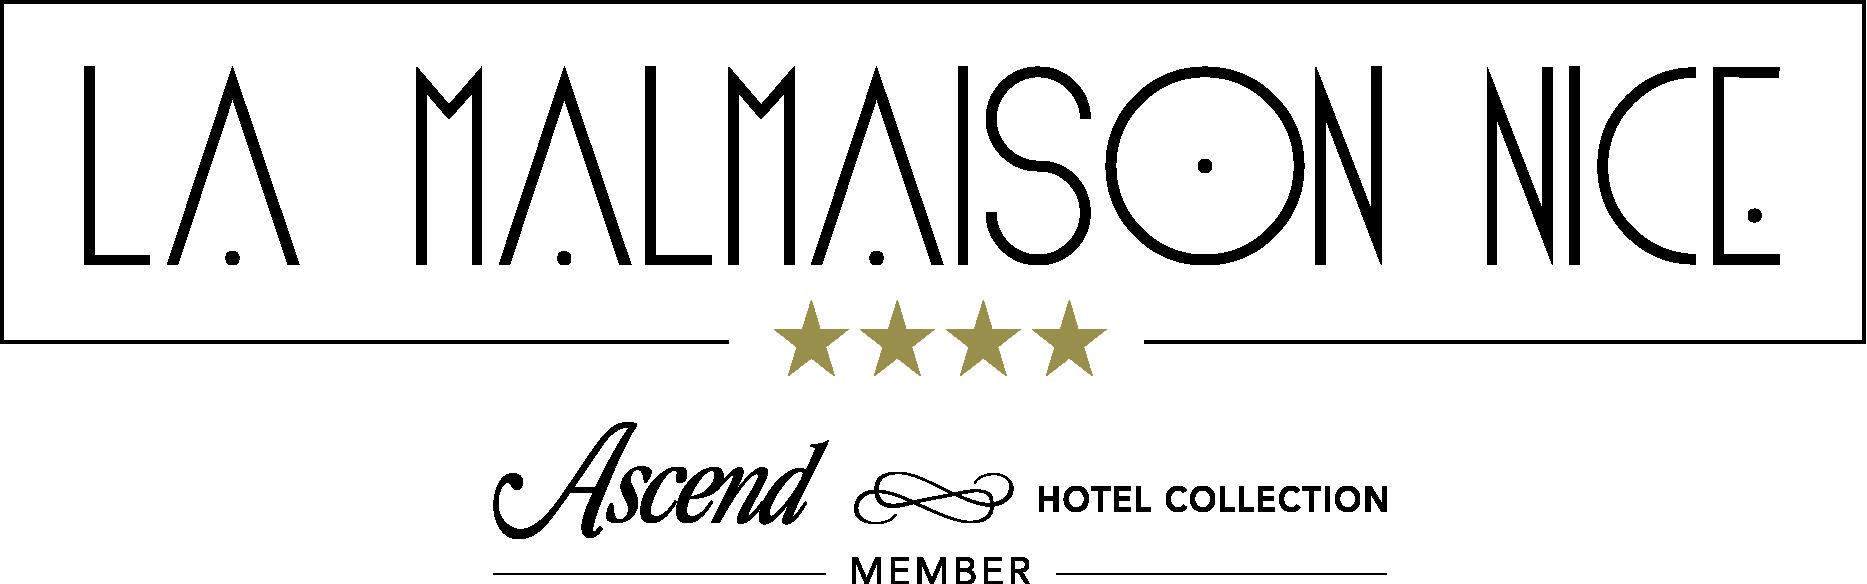 La Malmaison Nice Boutique Hôtel An Ascend Collection Member